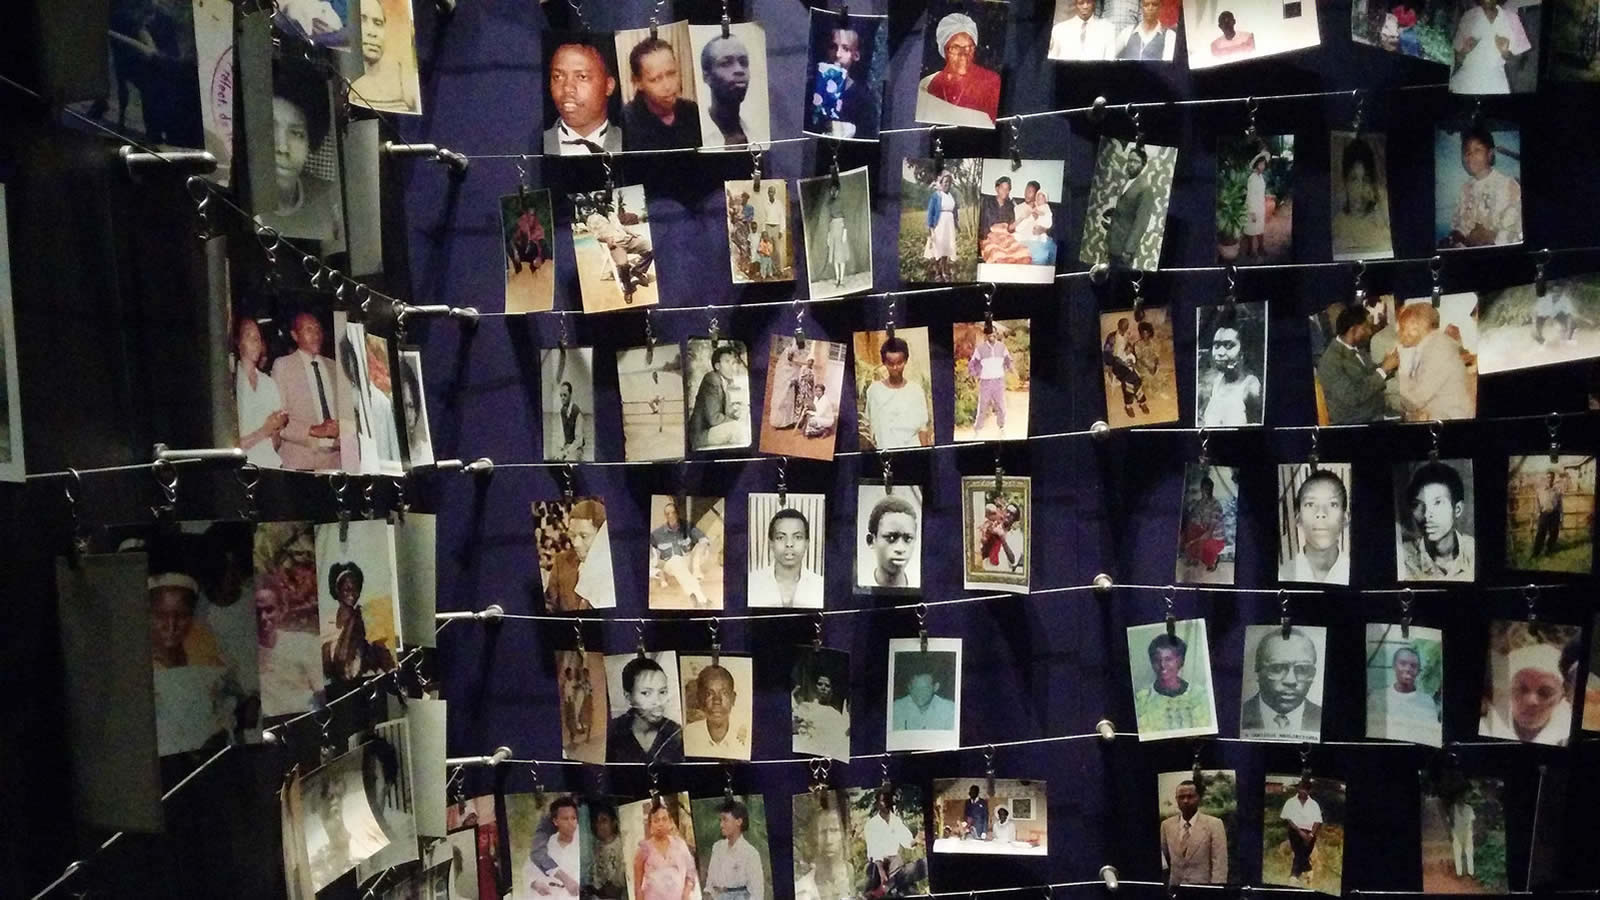 Genocide Memorial with Victims' Personal Photos in Kigali, Rwanda